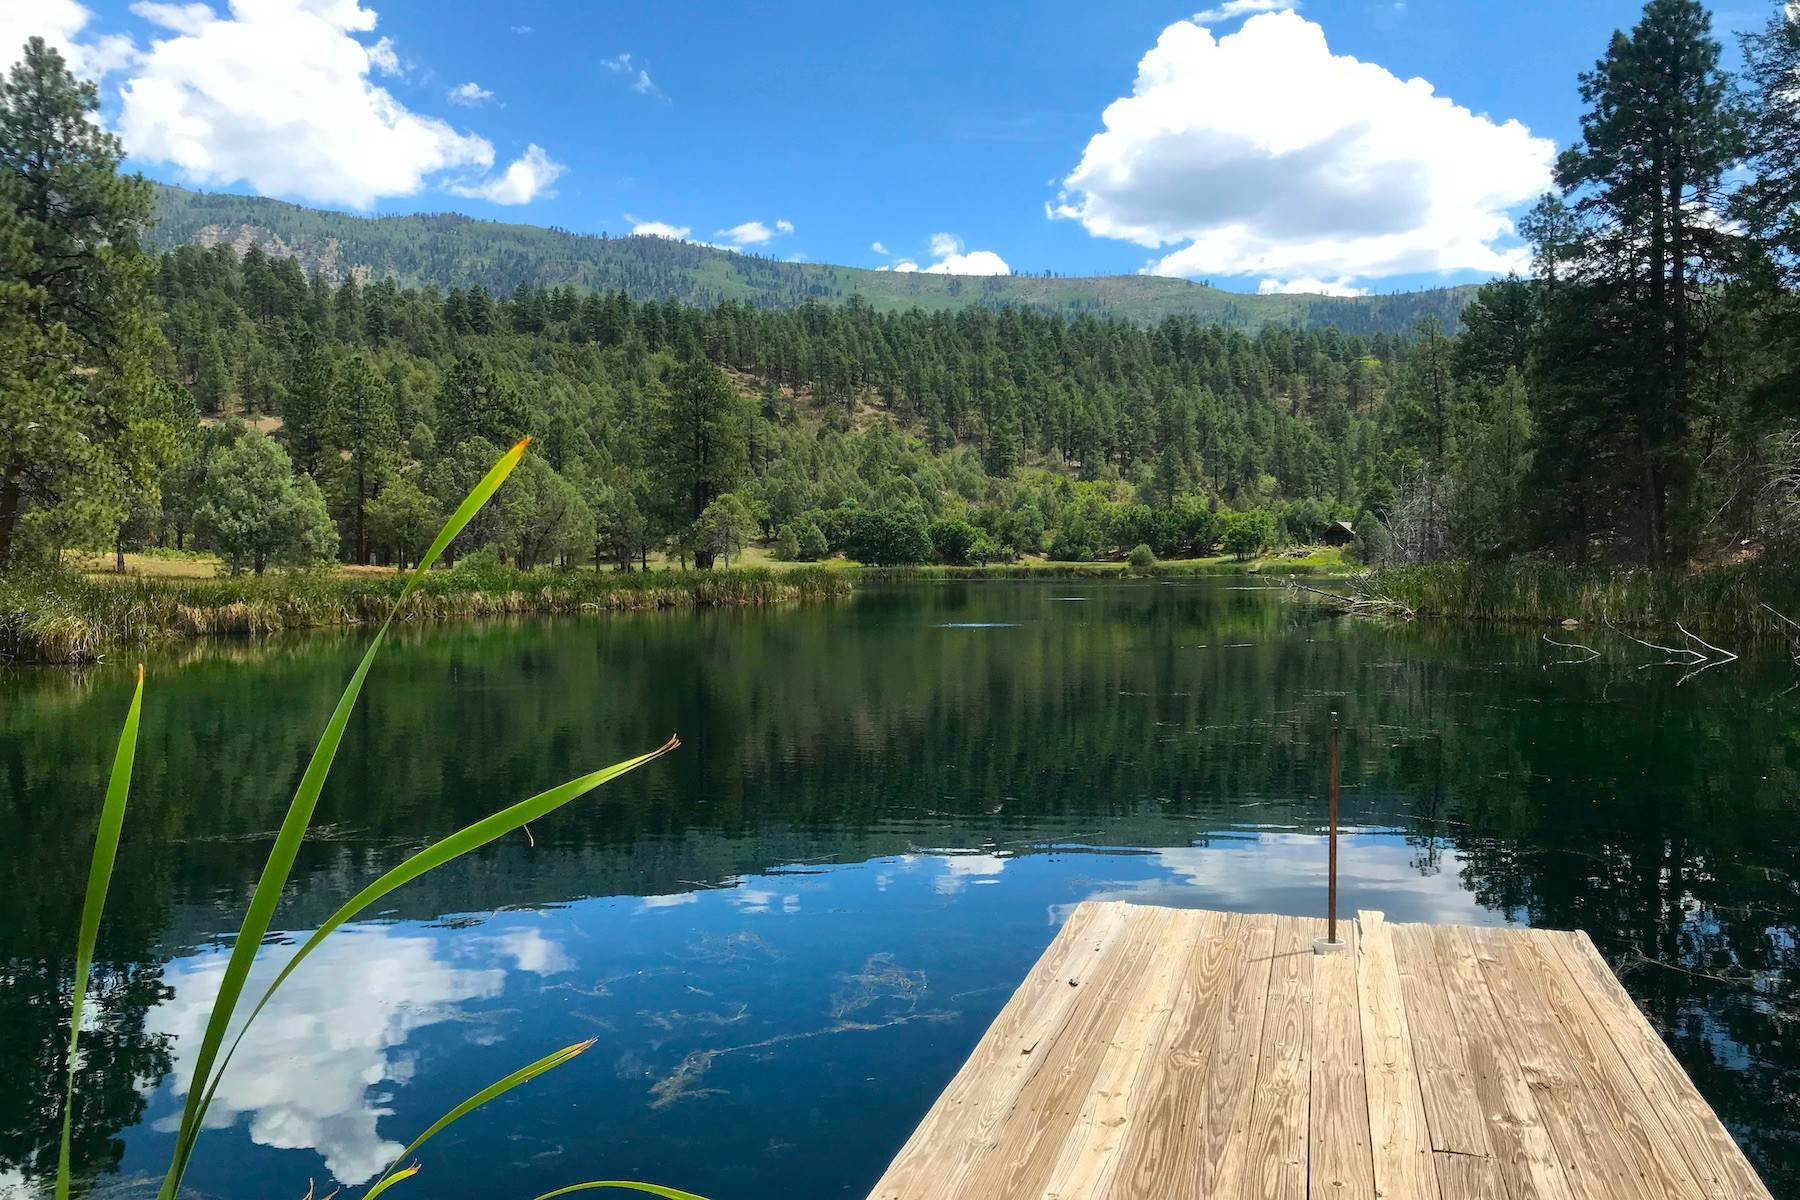 Property for Sale at 250 Becket Lake Drive Durango, Colorado 81301 United States